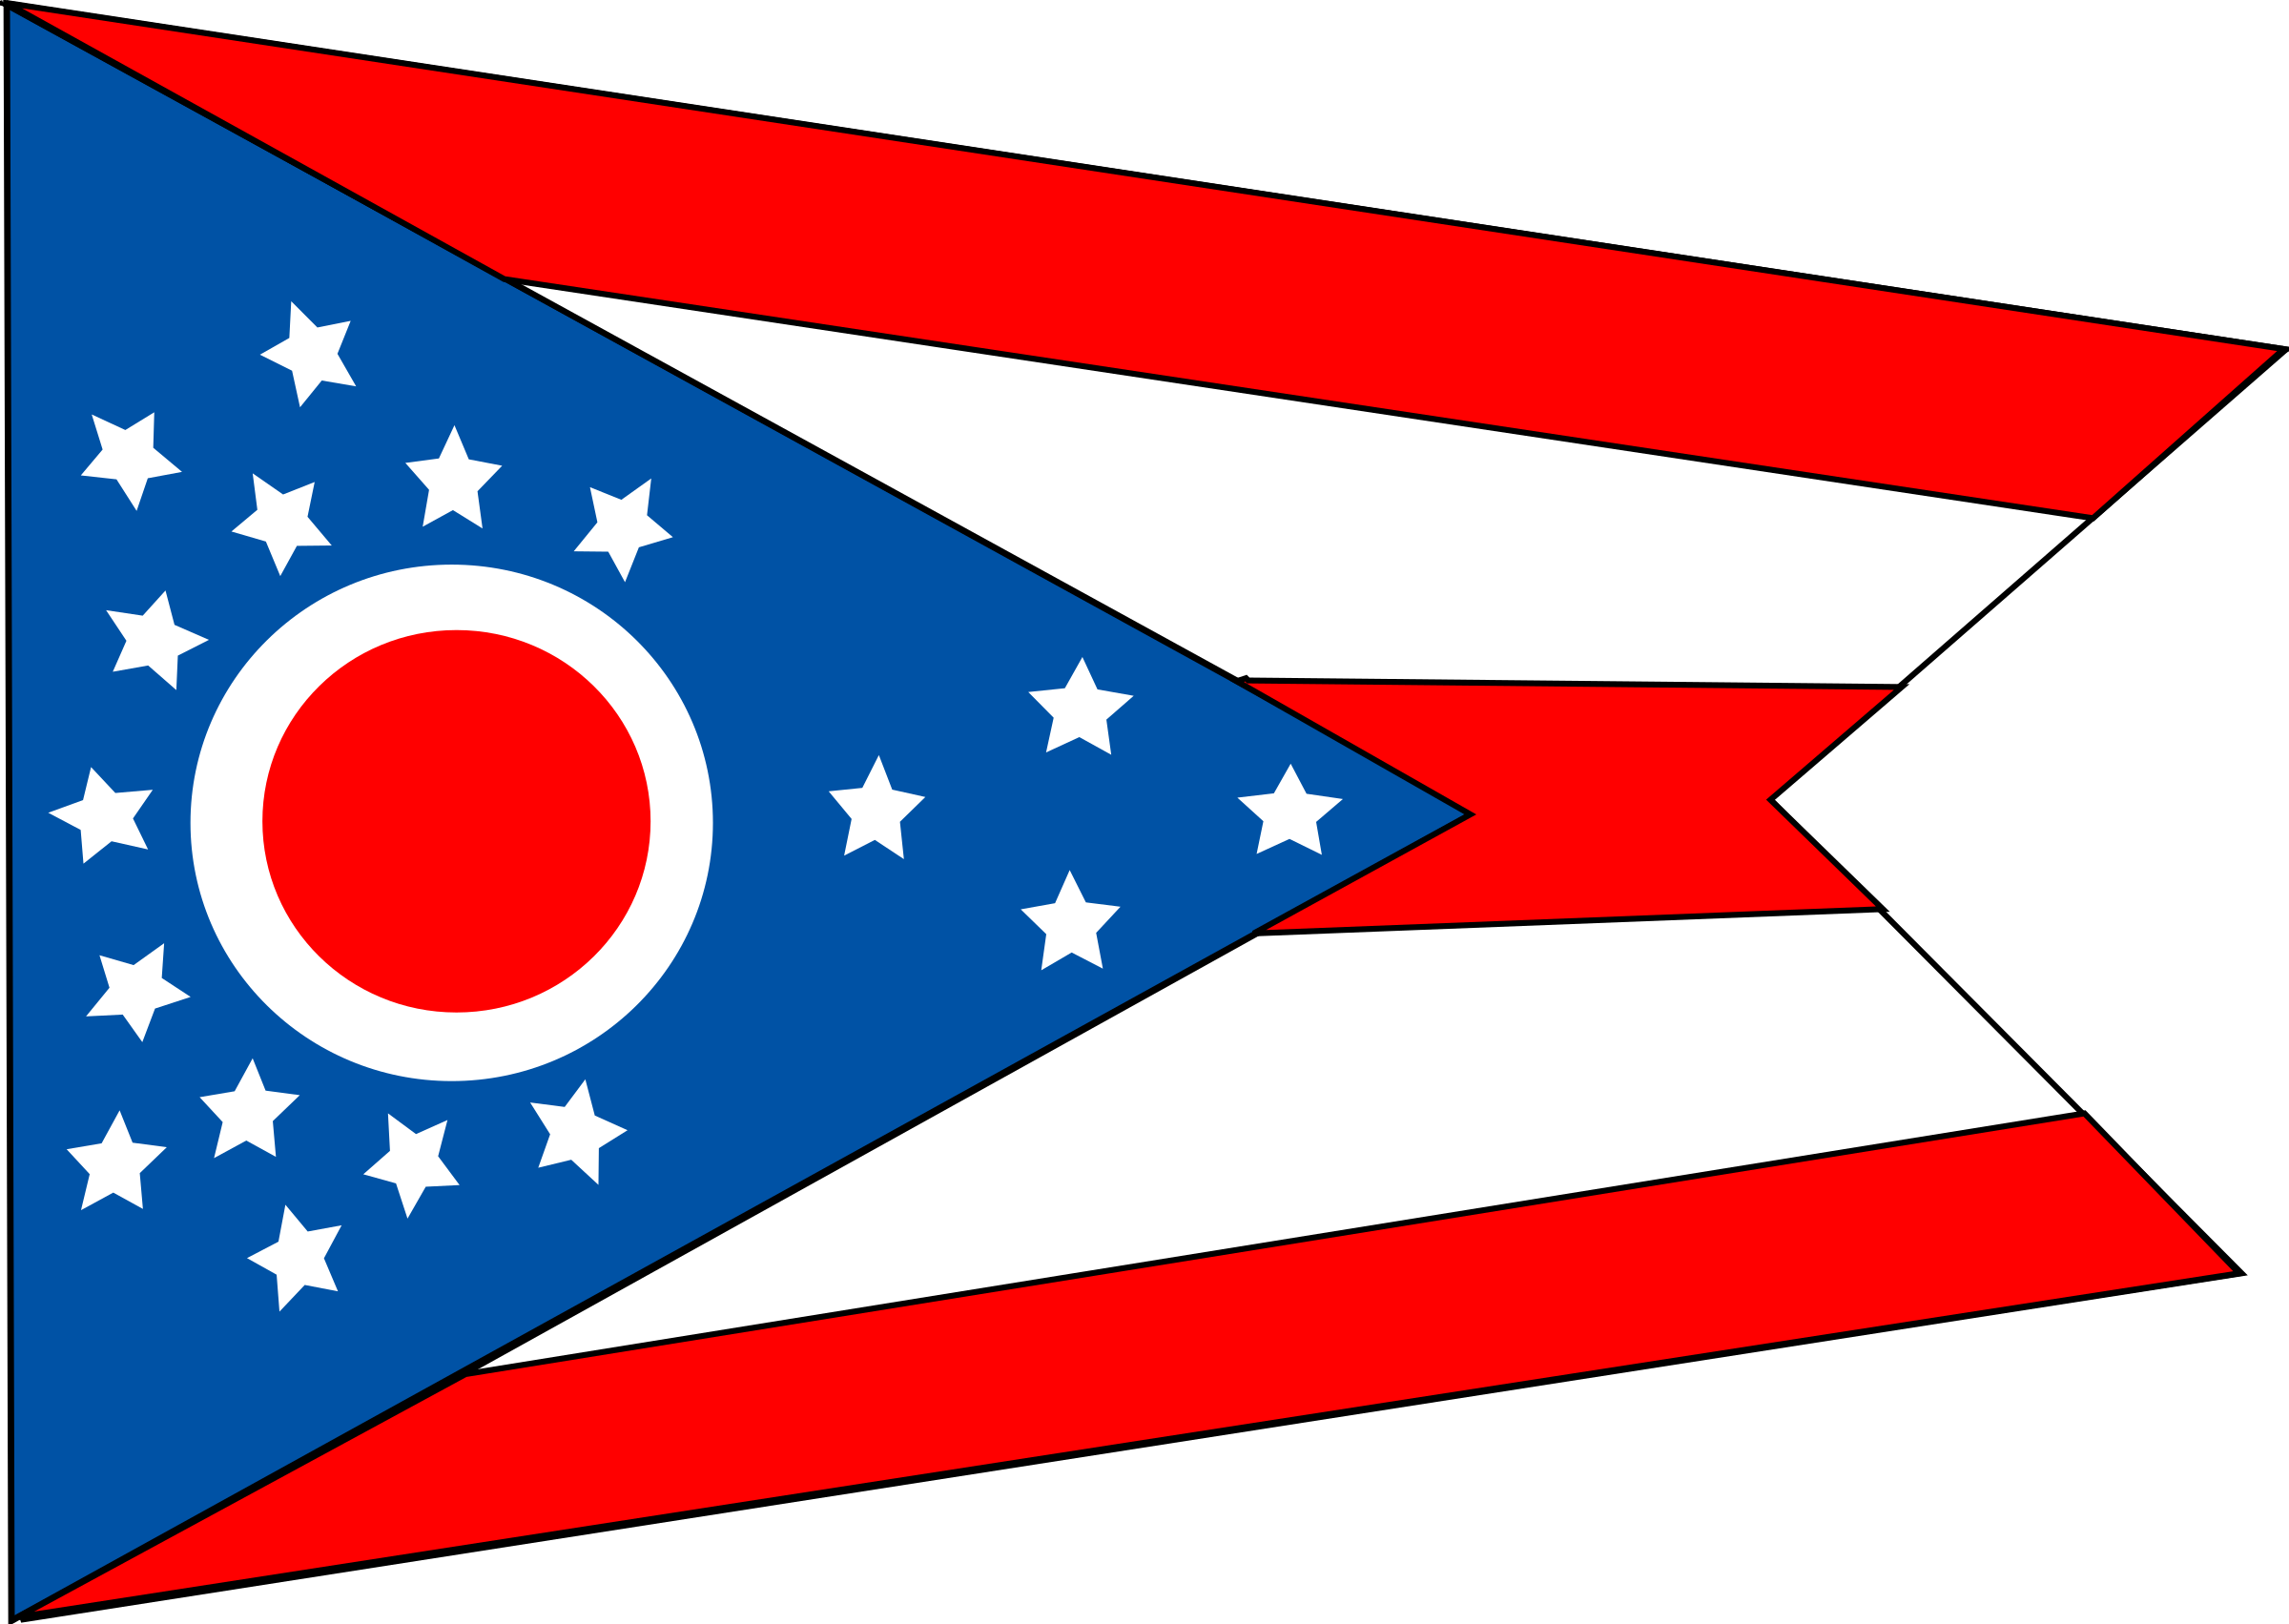 Waving kentucky state flag clipart.